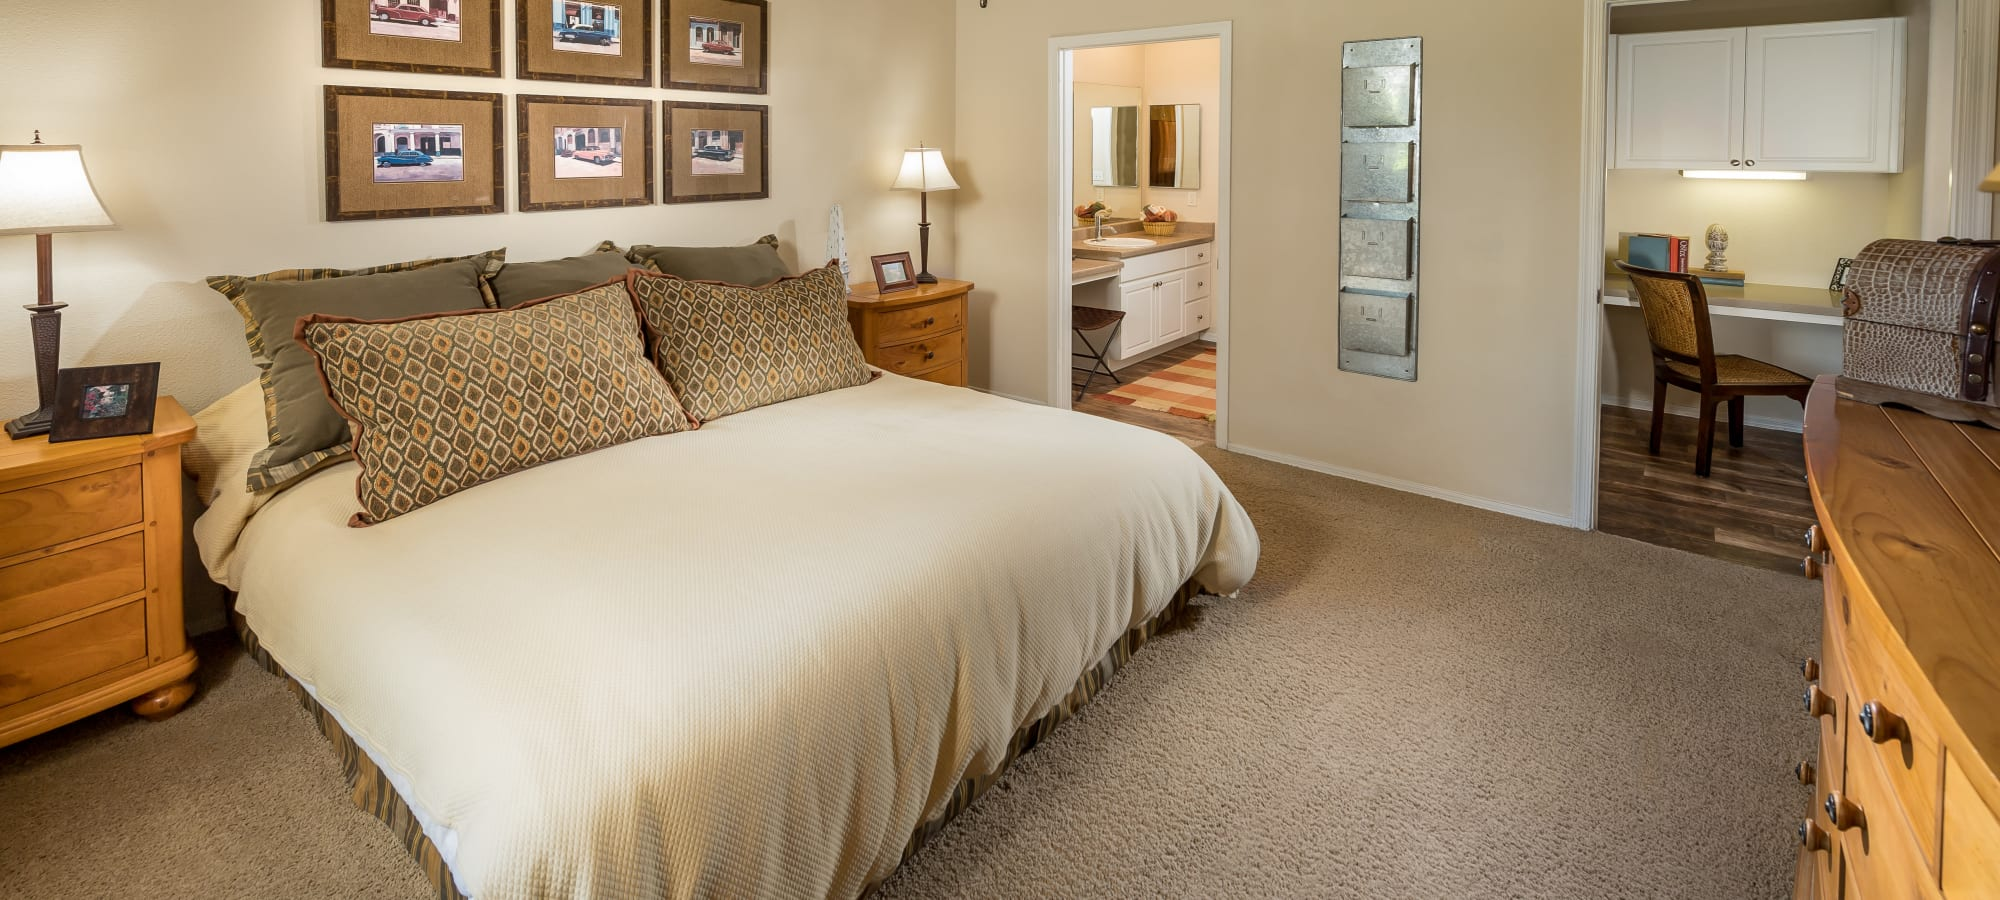 Well-lit master bedroom with an en suite bathroom in a model home at Stone Oaks in Chandler, Arizona